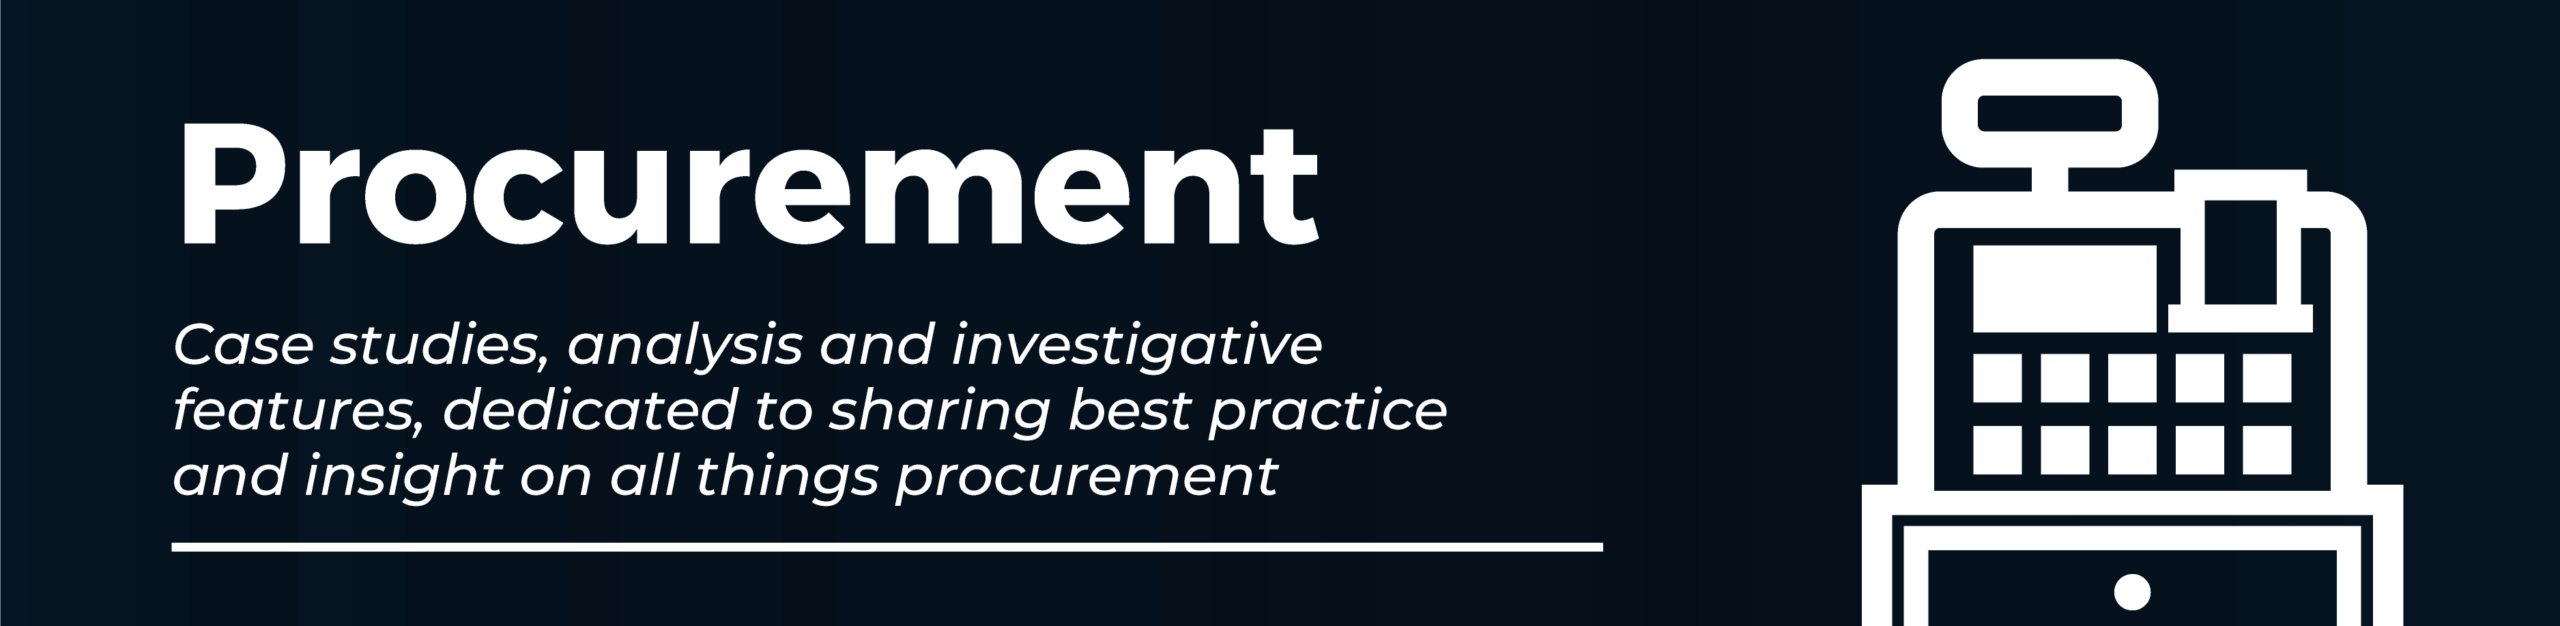 Procurement. Case studies, analysis and investigative features, dedicated to sharing best practice and insight on all things procurement.